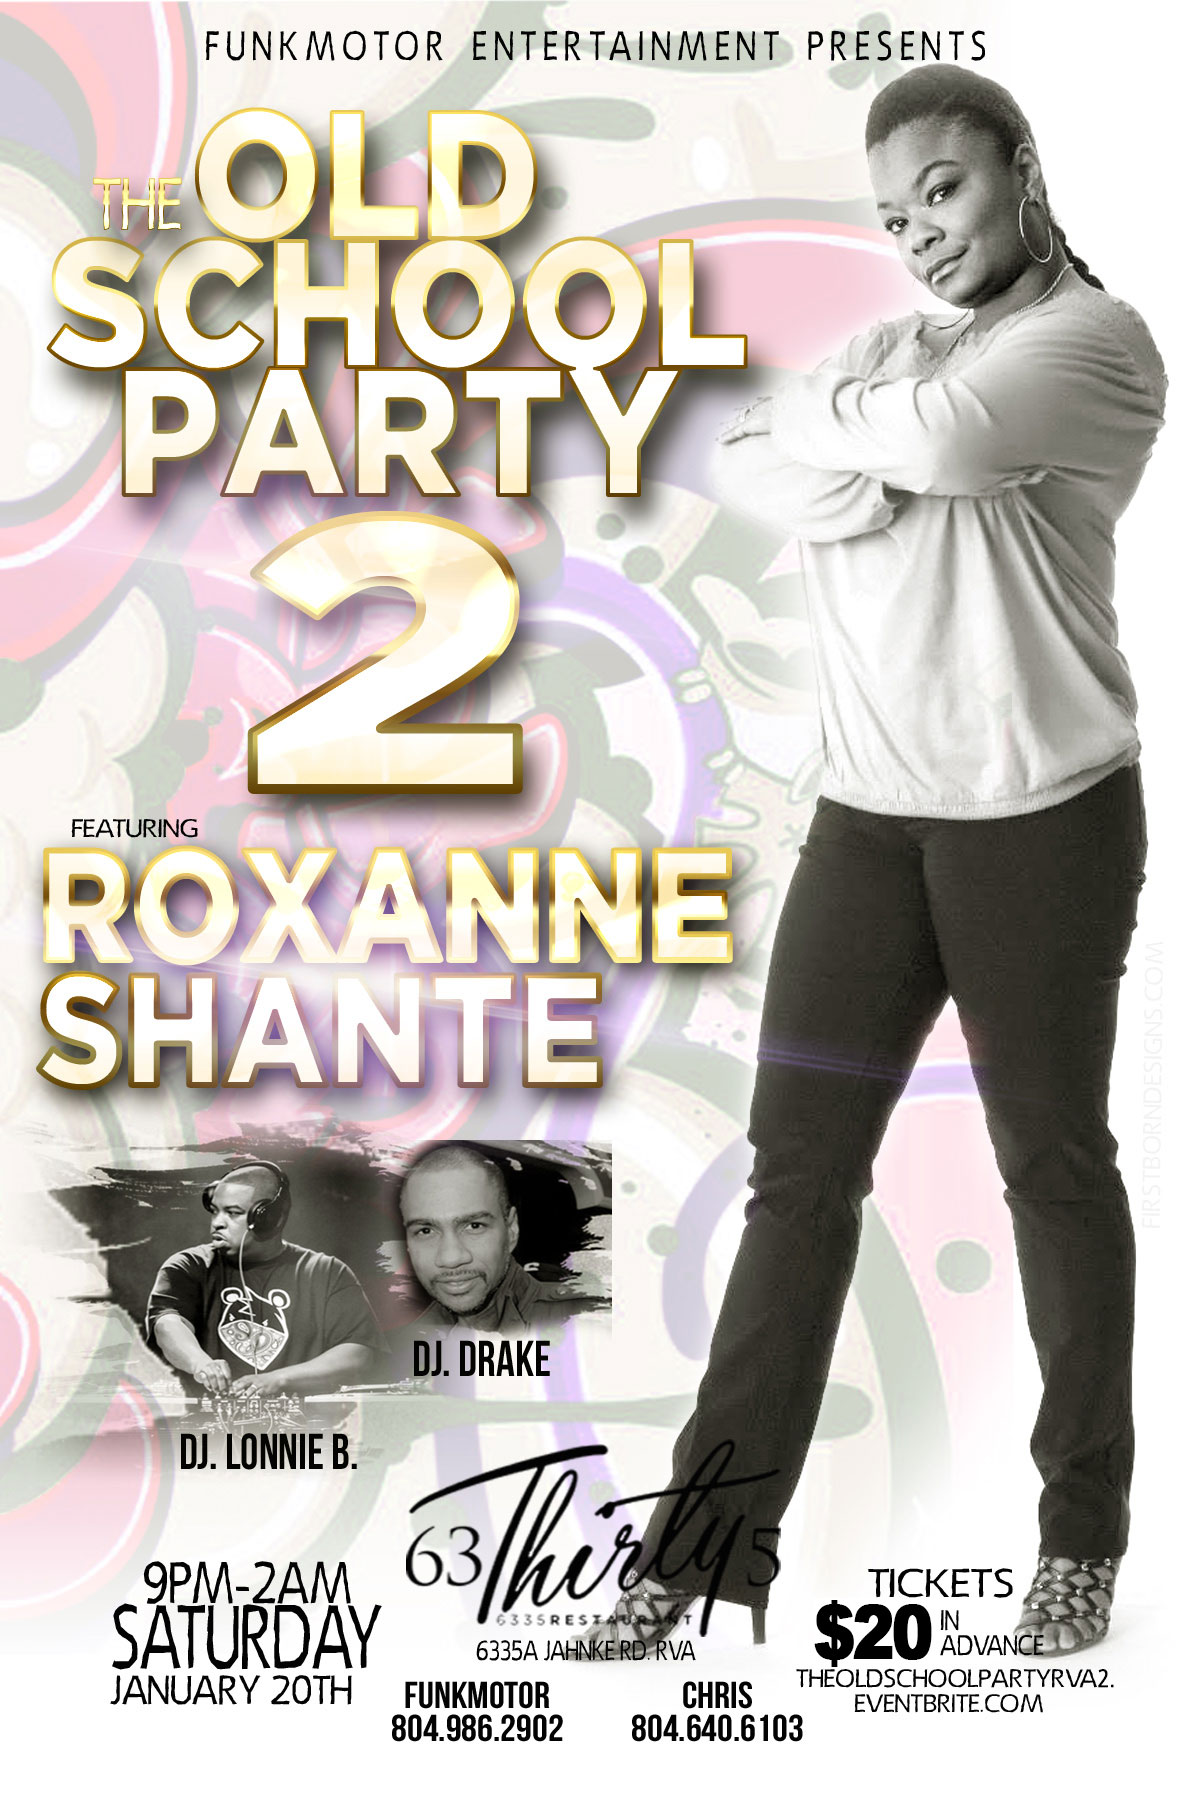 The Old School Party Part 2 featuring Roxanne Shante